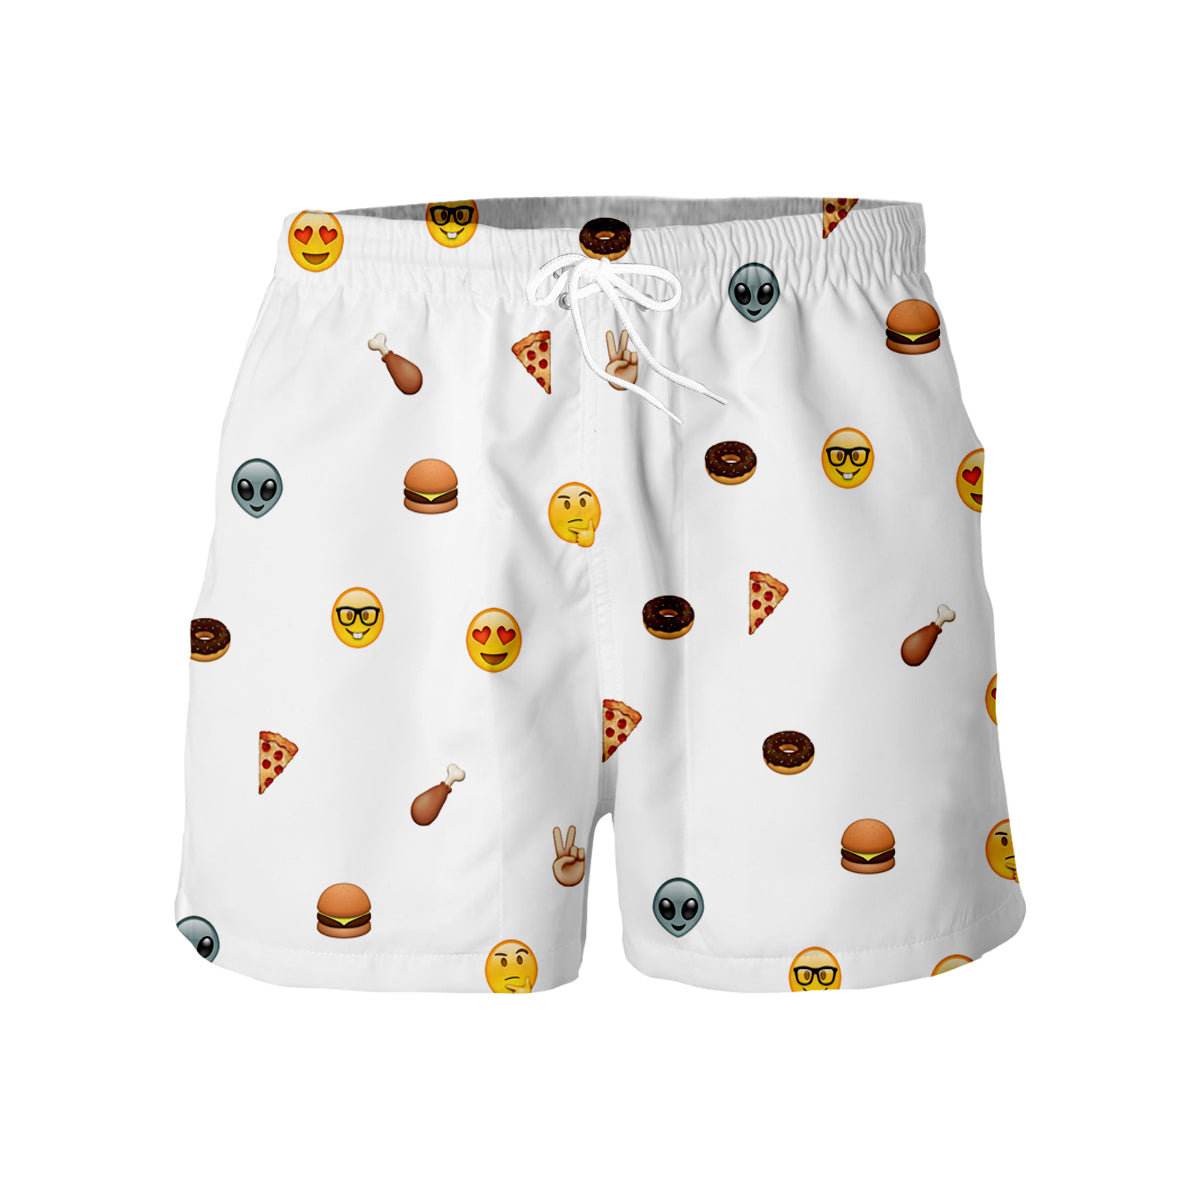 All Emojis Shorts - Shweeet